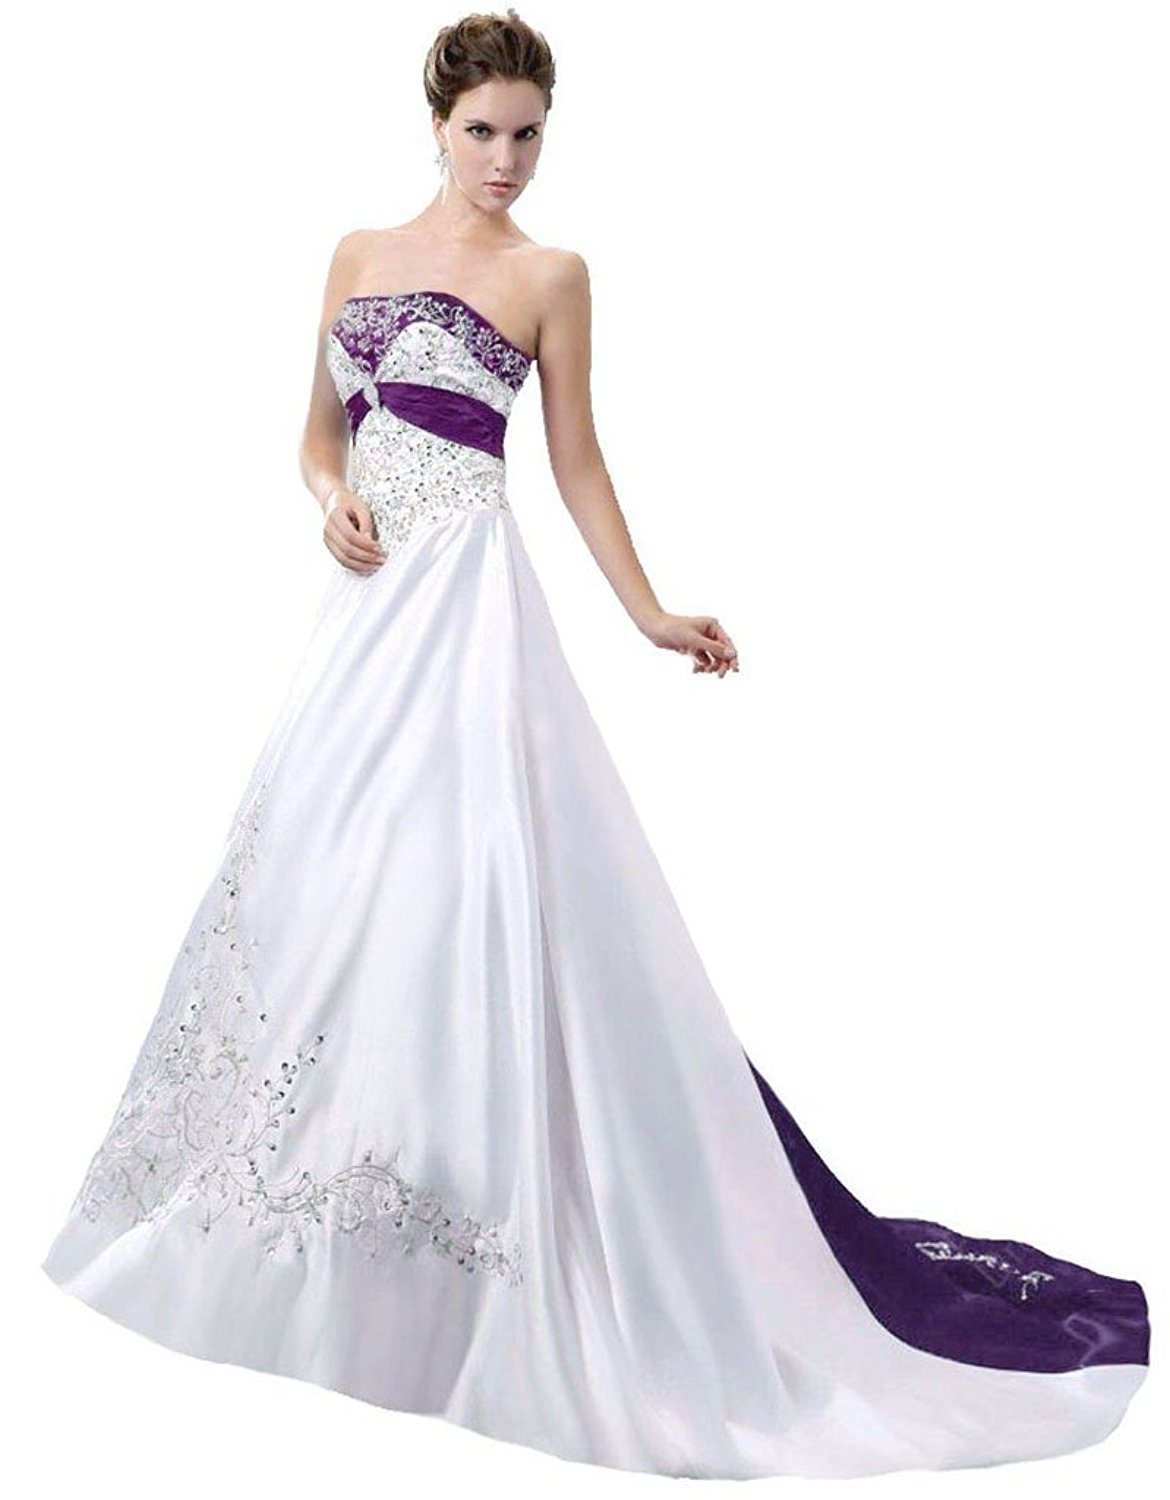 A-line Satin Strapless Embroidery Wedding Dress Bridal Gown Wedding Bride Dress